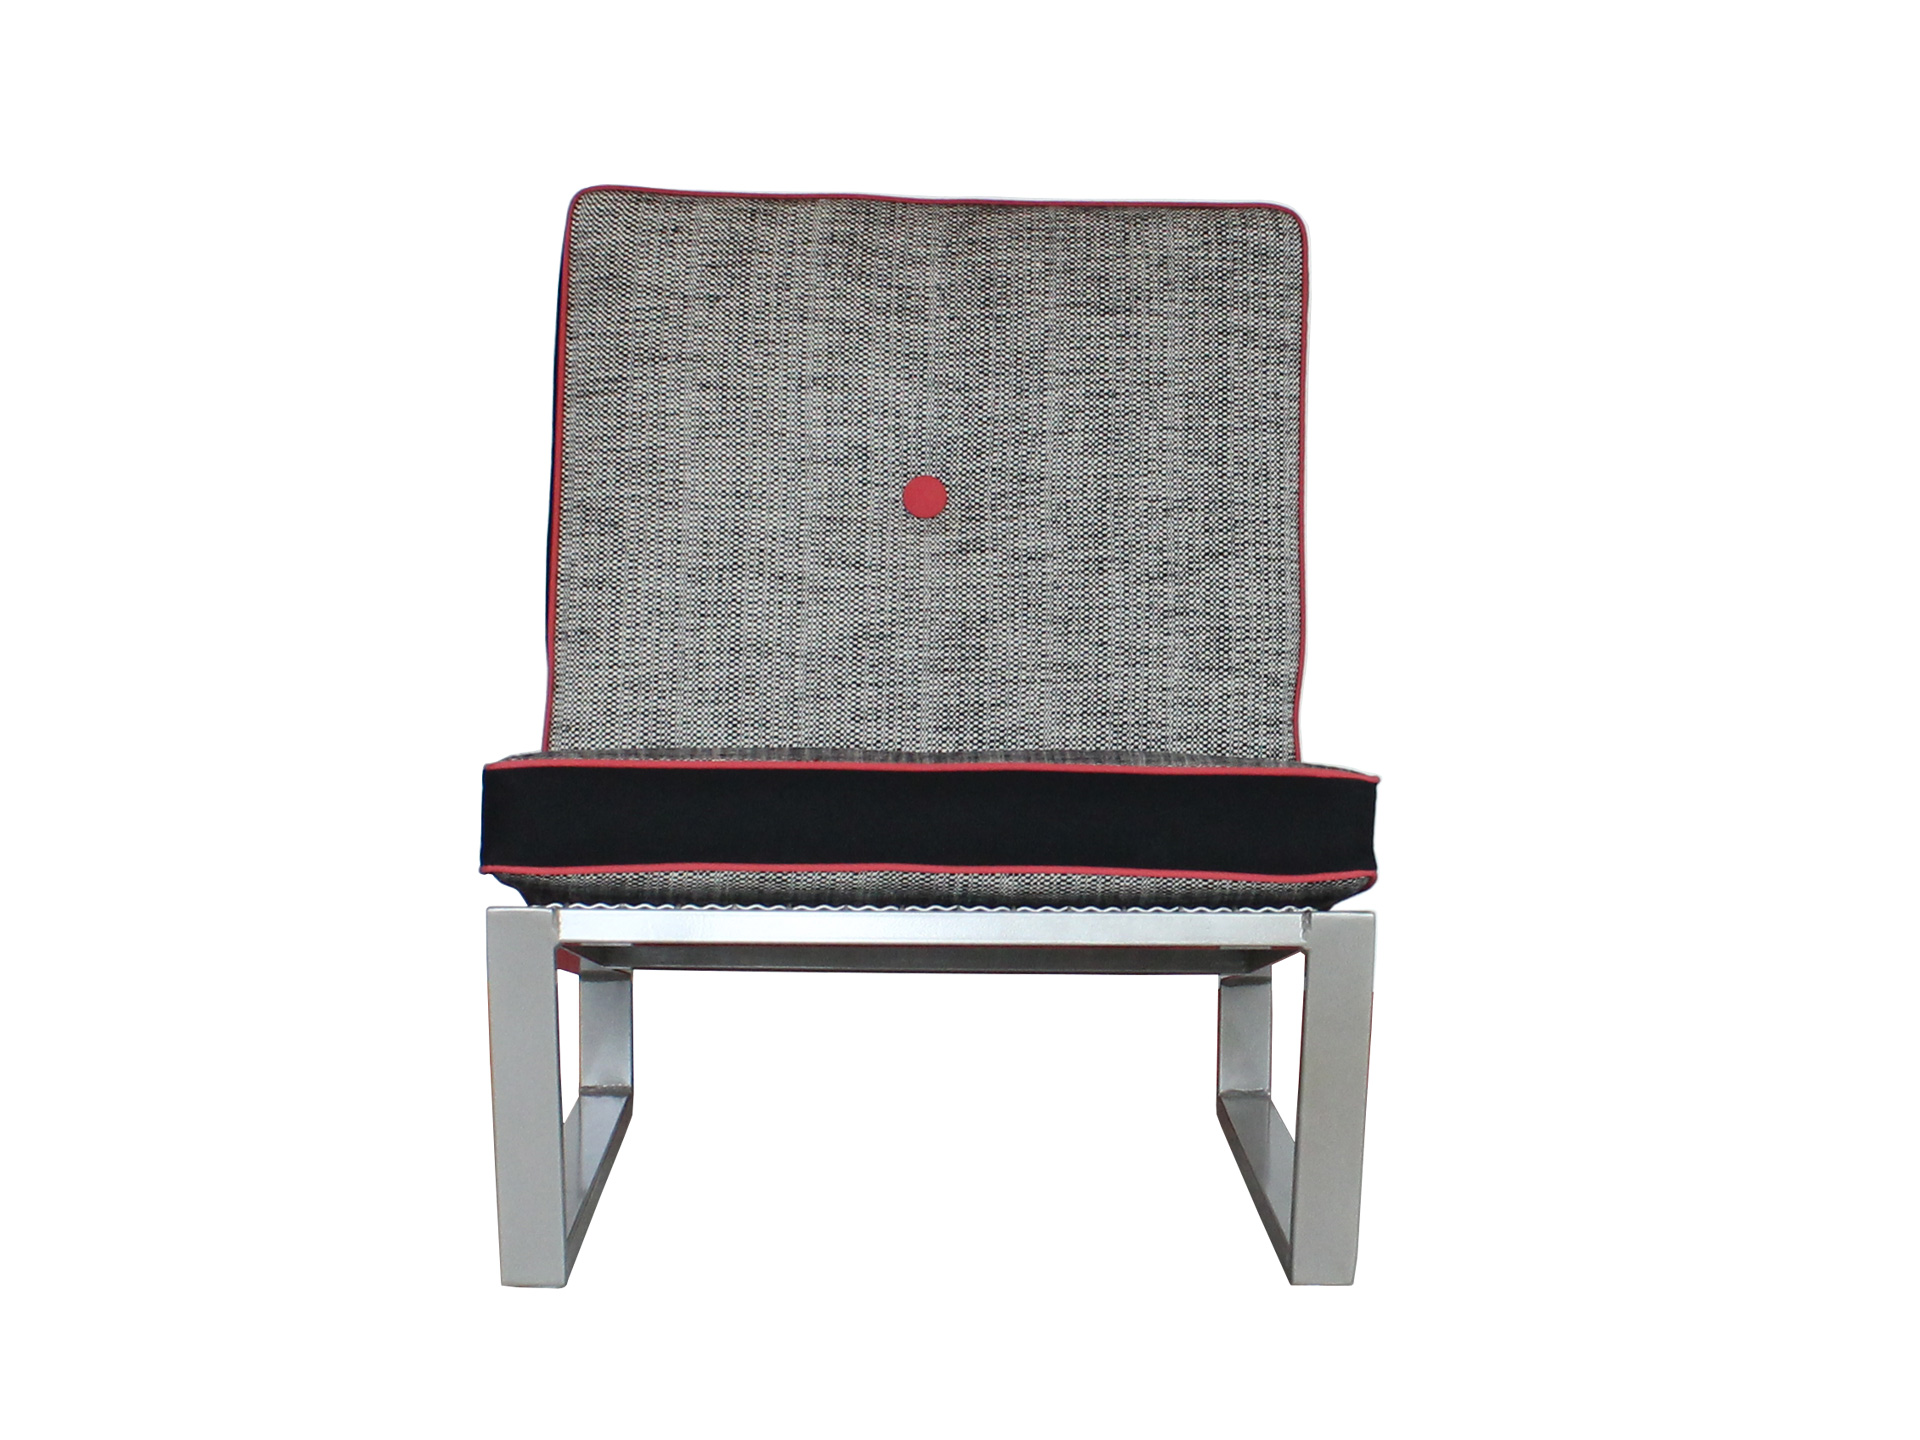 Del Calle chair in black, white, and grey from the front